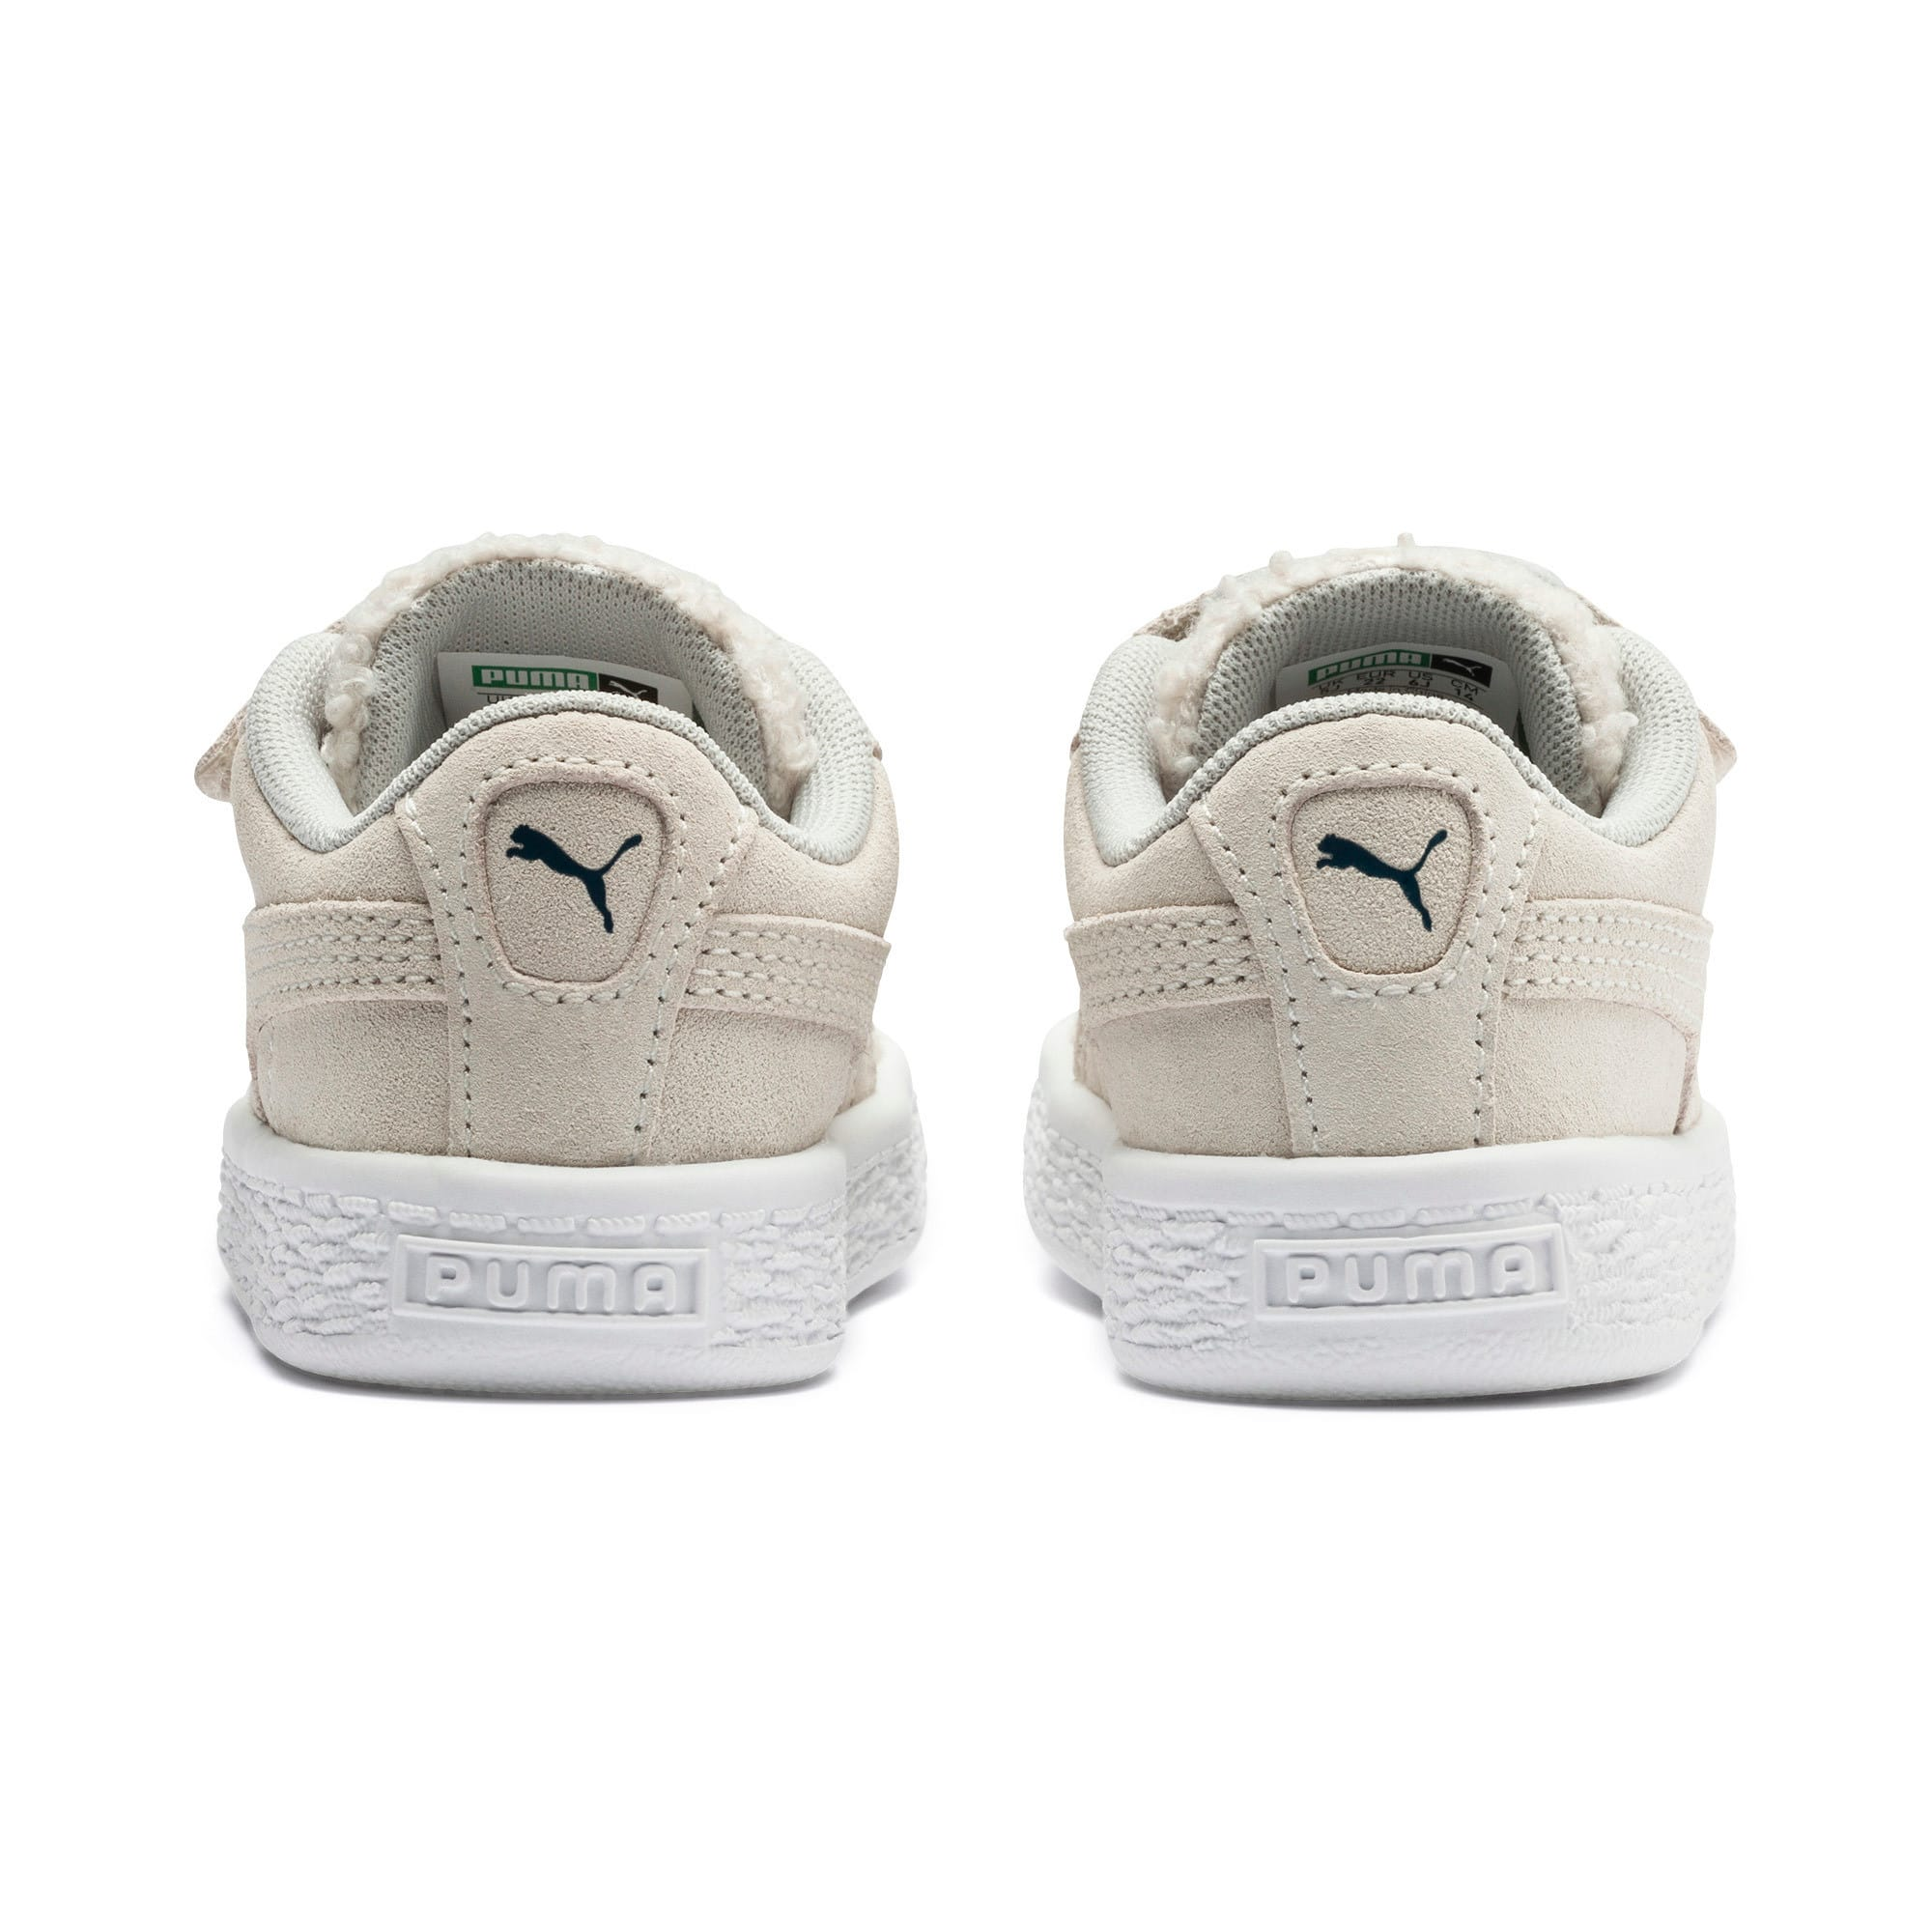 Thumbnail 3 of Suede Winter Monster Babies' Trainers, Whisper White-Gibraltar Sea, medium